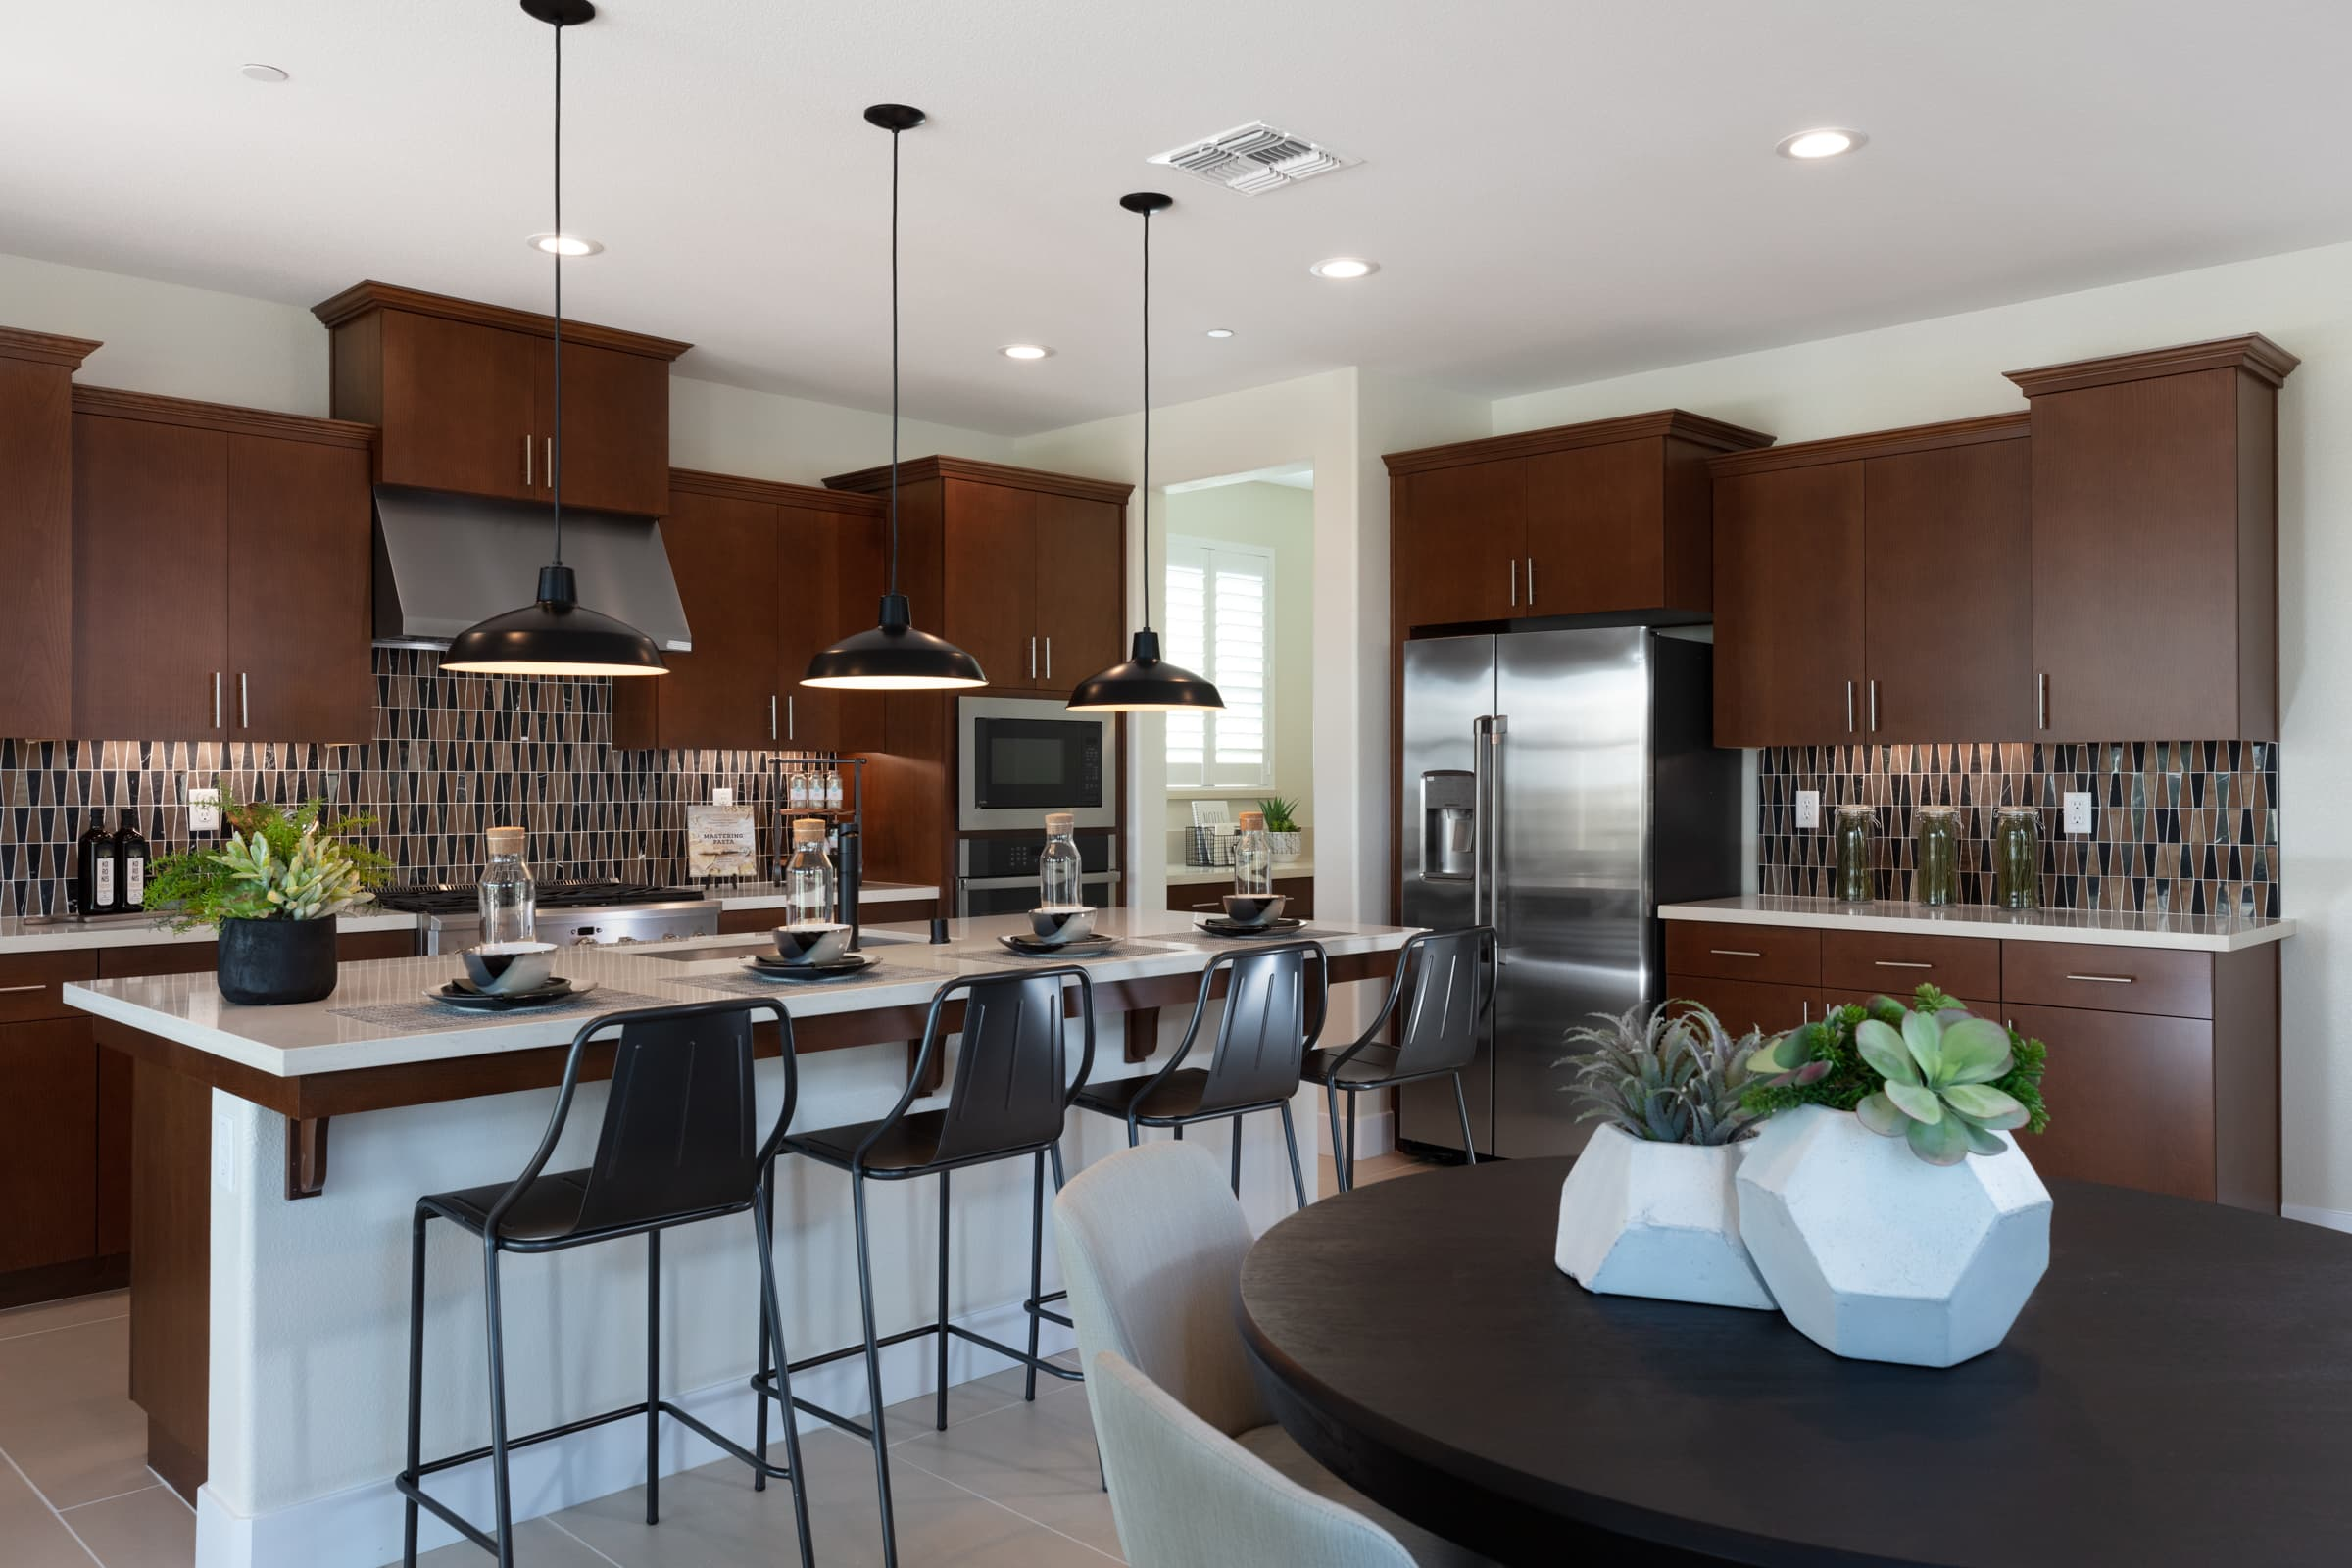 Kitchen of Berkshire Plan 3 at Ellis in Tracy, CA